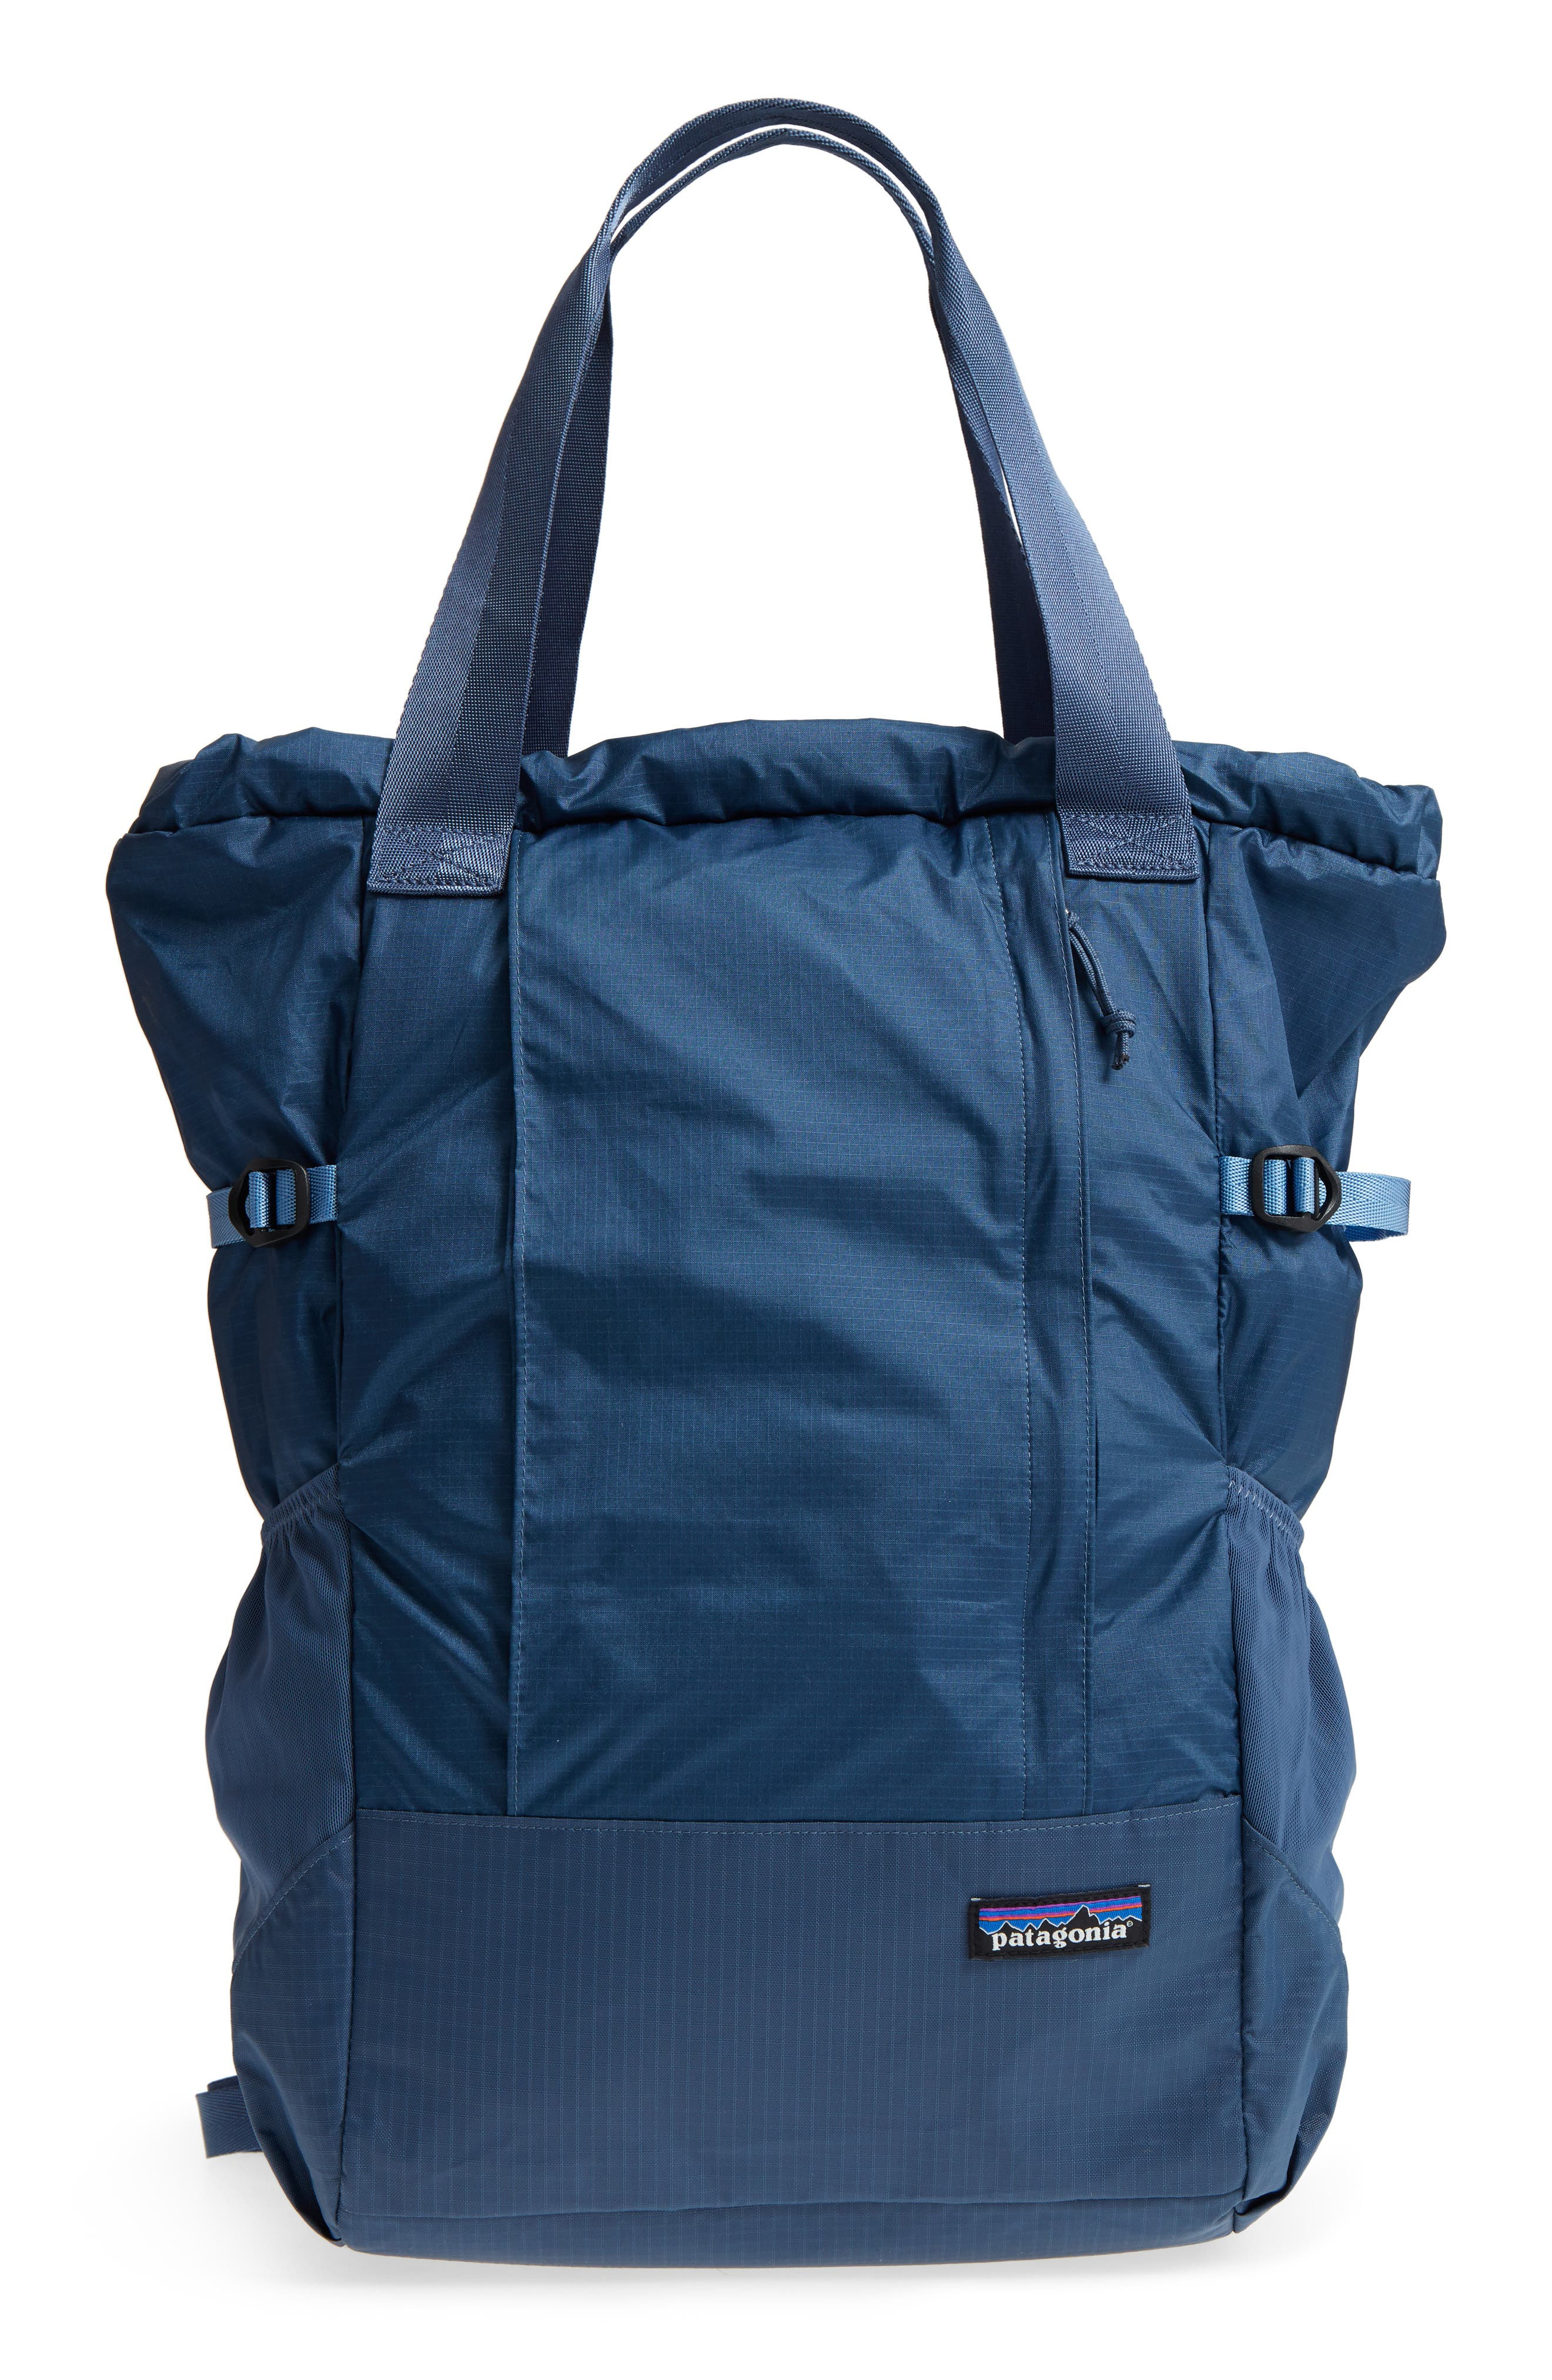 Lightweight Travel Tote Pack,                             Main thumbnail 1, color,                             Dolomite Blue